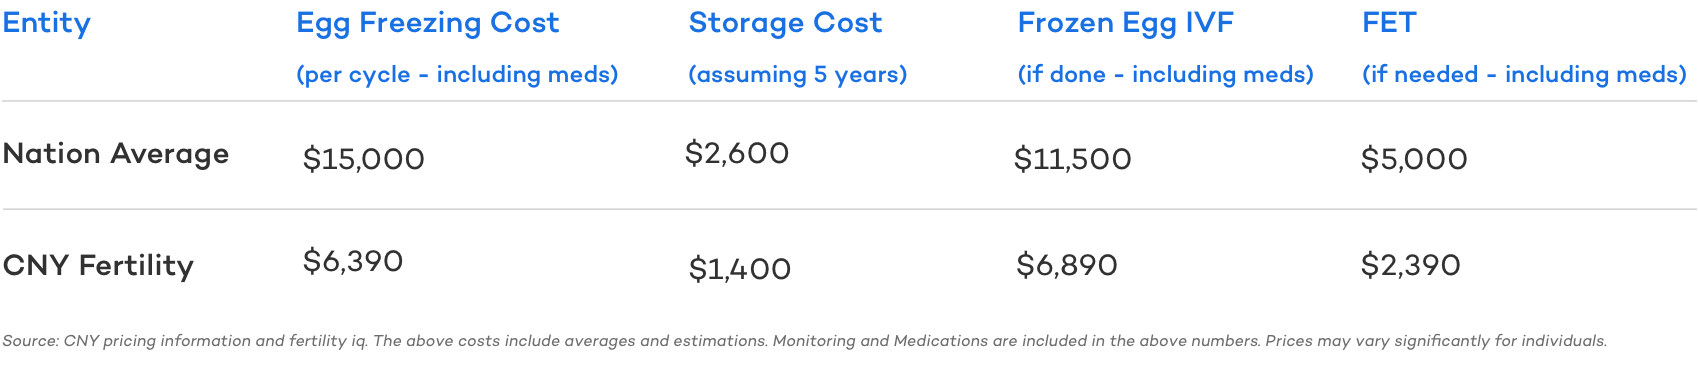 Egg Freezing Cost Overview